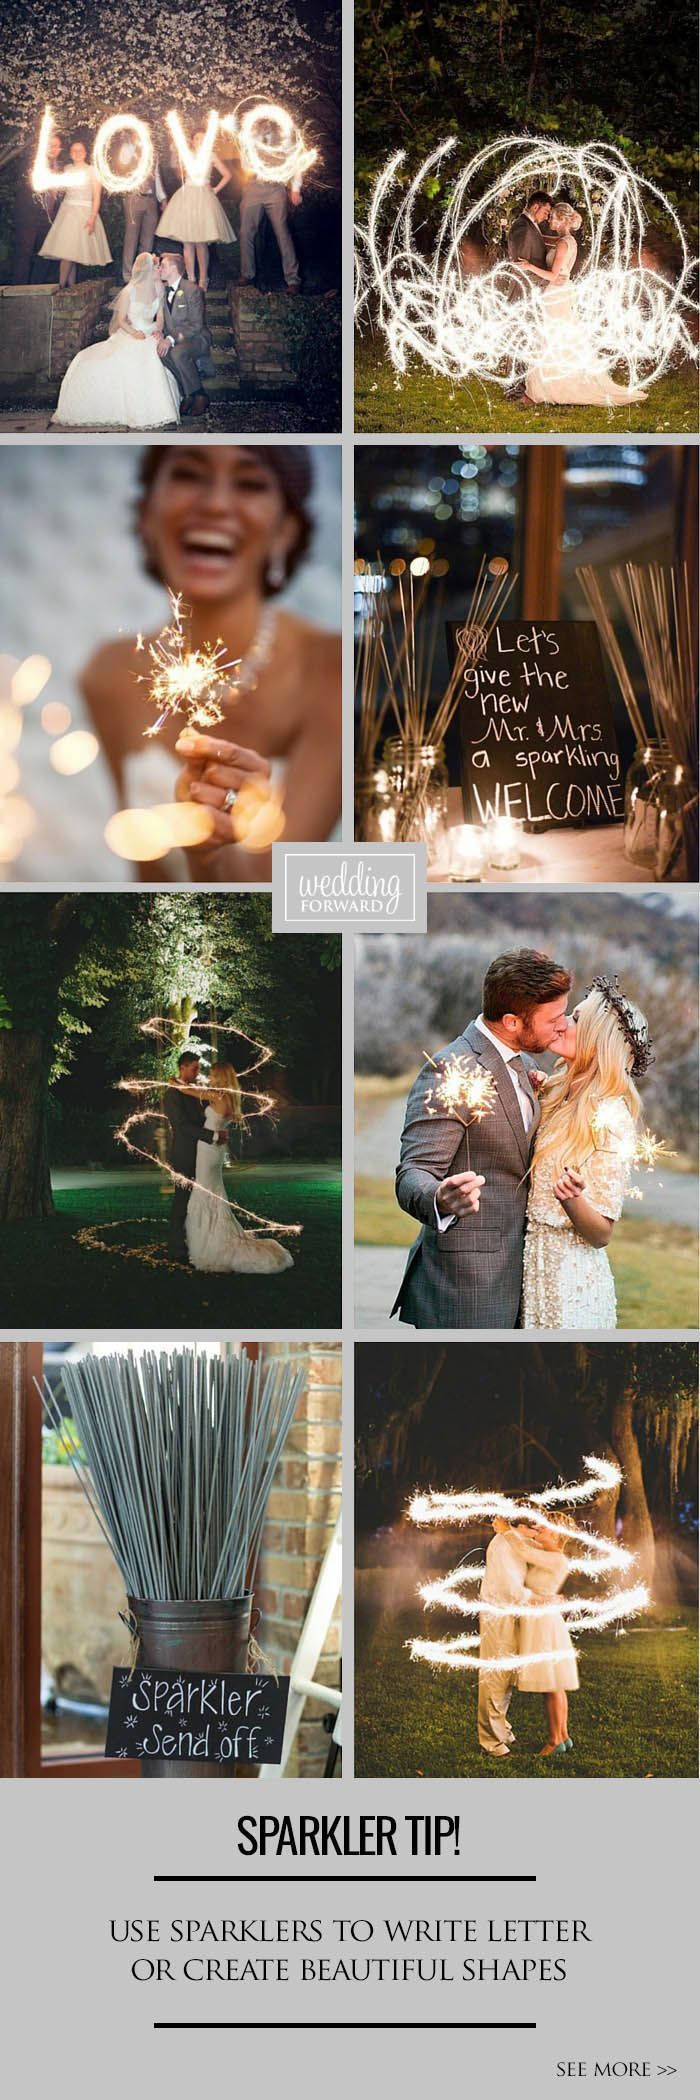 wedding send off ideas 3 Sparkler Photo Ideas Tips Keep reading for tips for perfect wedding sparker photos